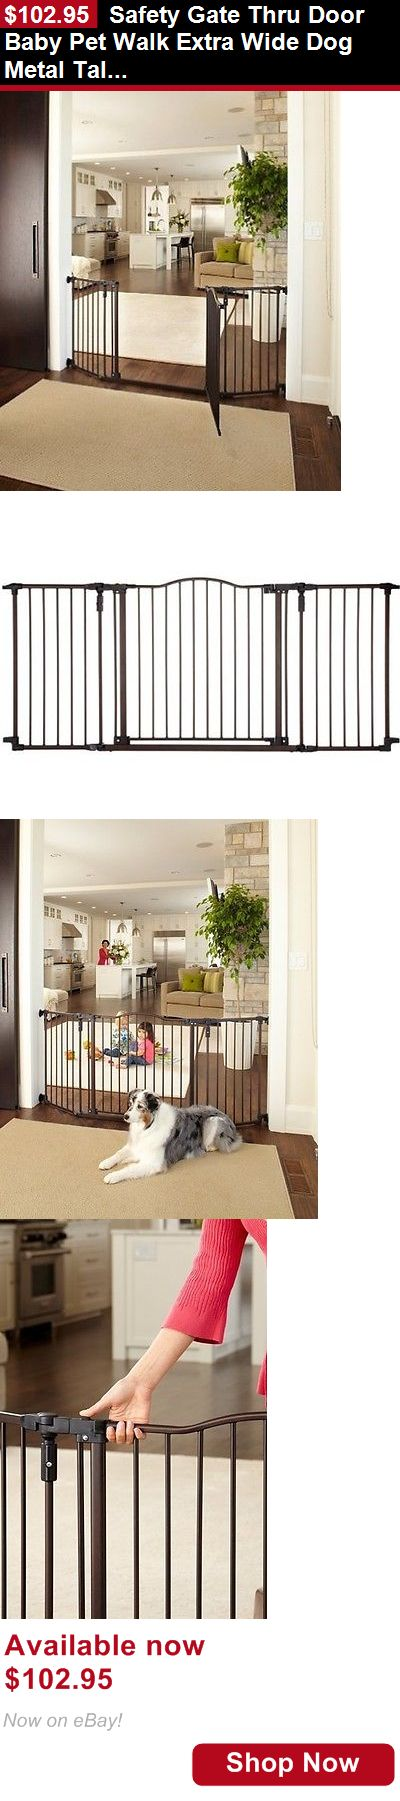 Baby Safety Gates: Safety Gate Thru Door Baby Pet Walk Extra Wide Dog Metal Tall Fence Toddler Home BUY IT NOW ONLY: $102.95